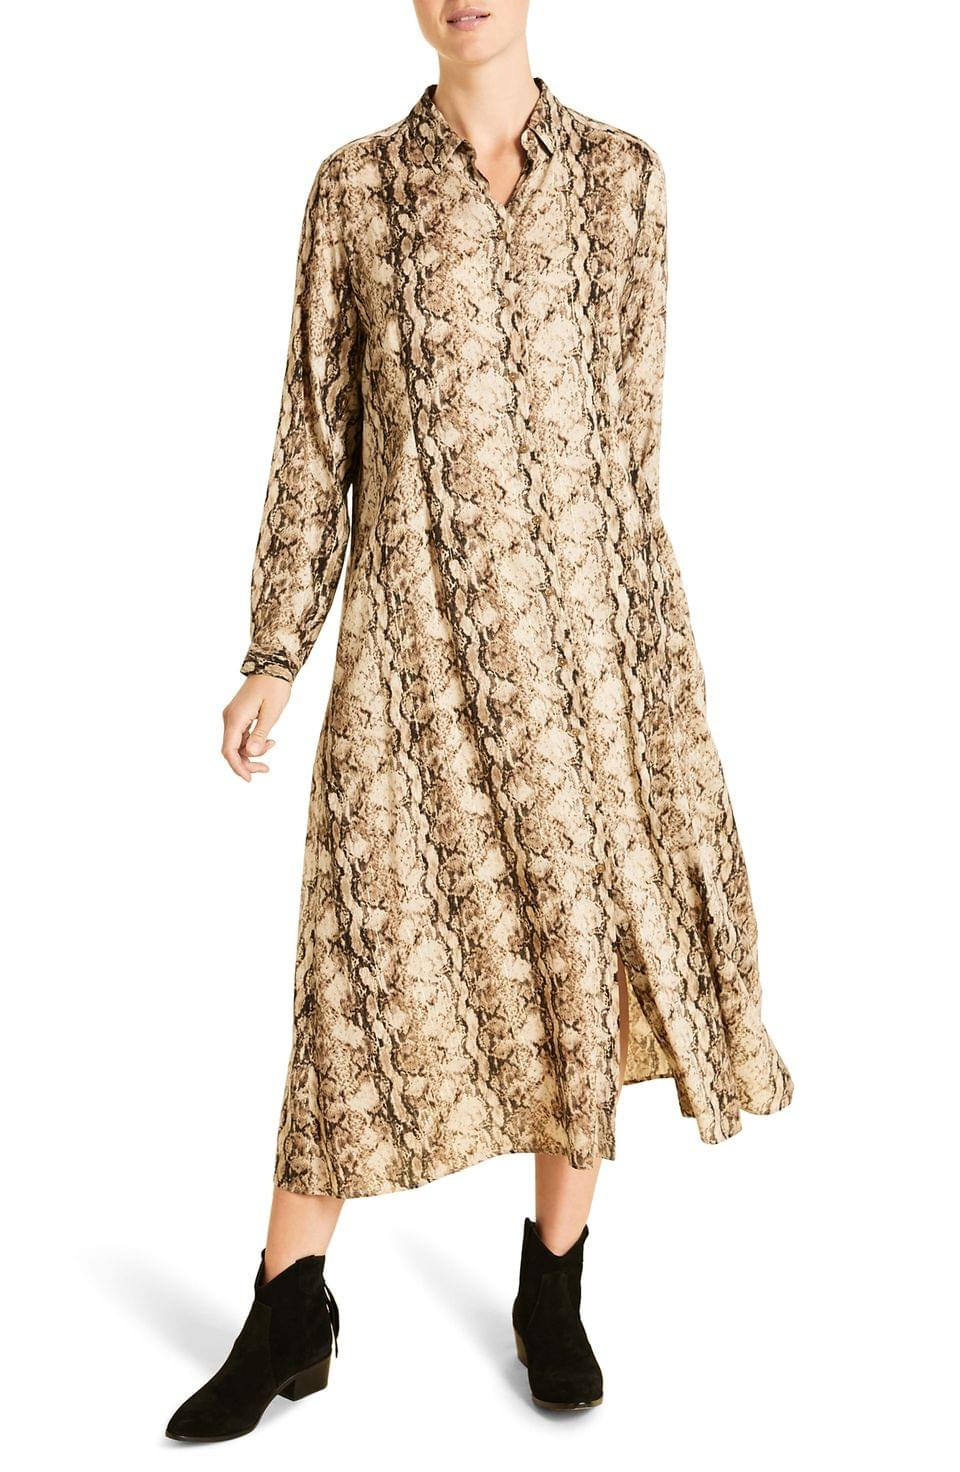 Women's Marina Rinaldi Decalogo Snake Print Long Sleeve Shirtdress (Plus Size)